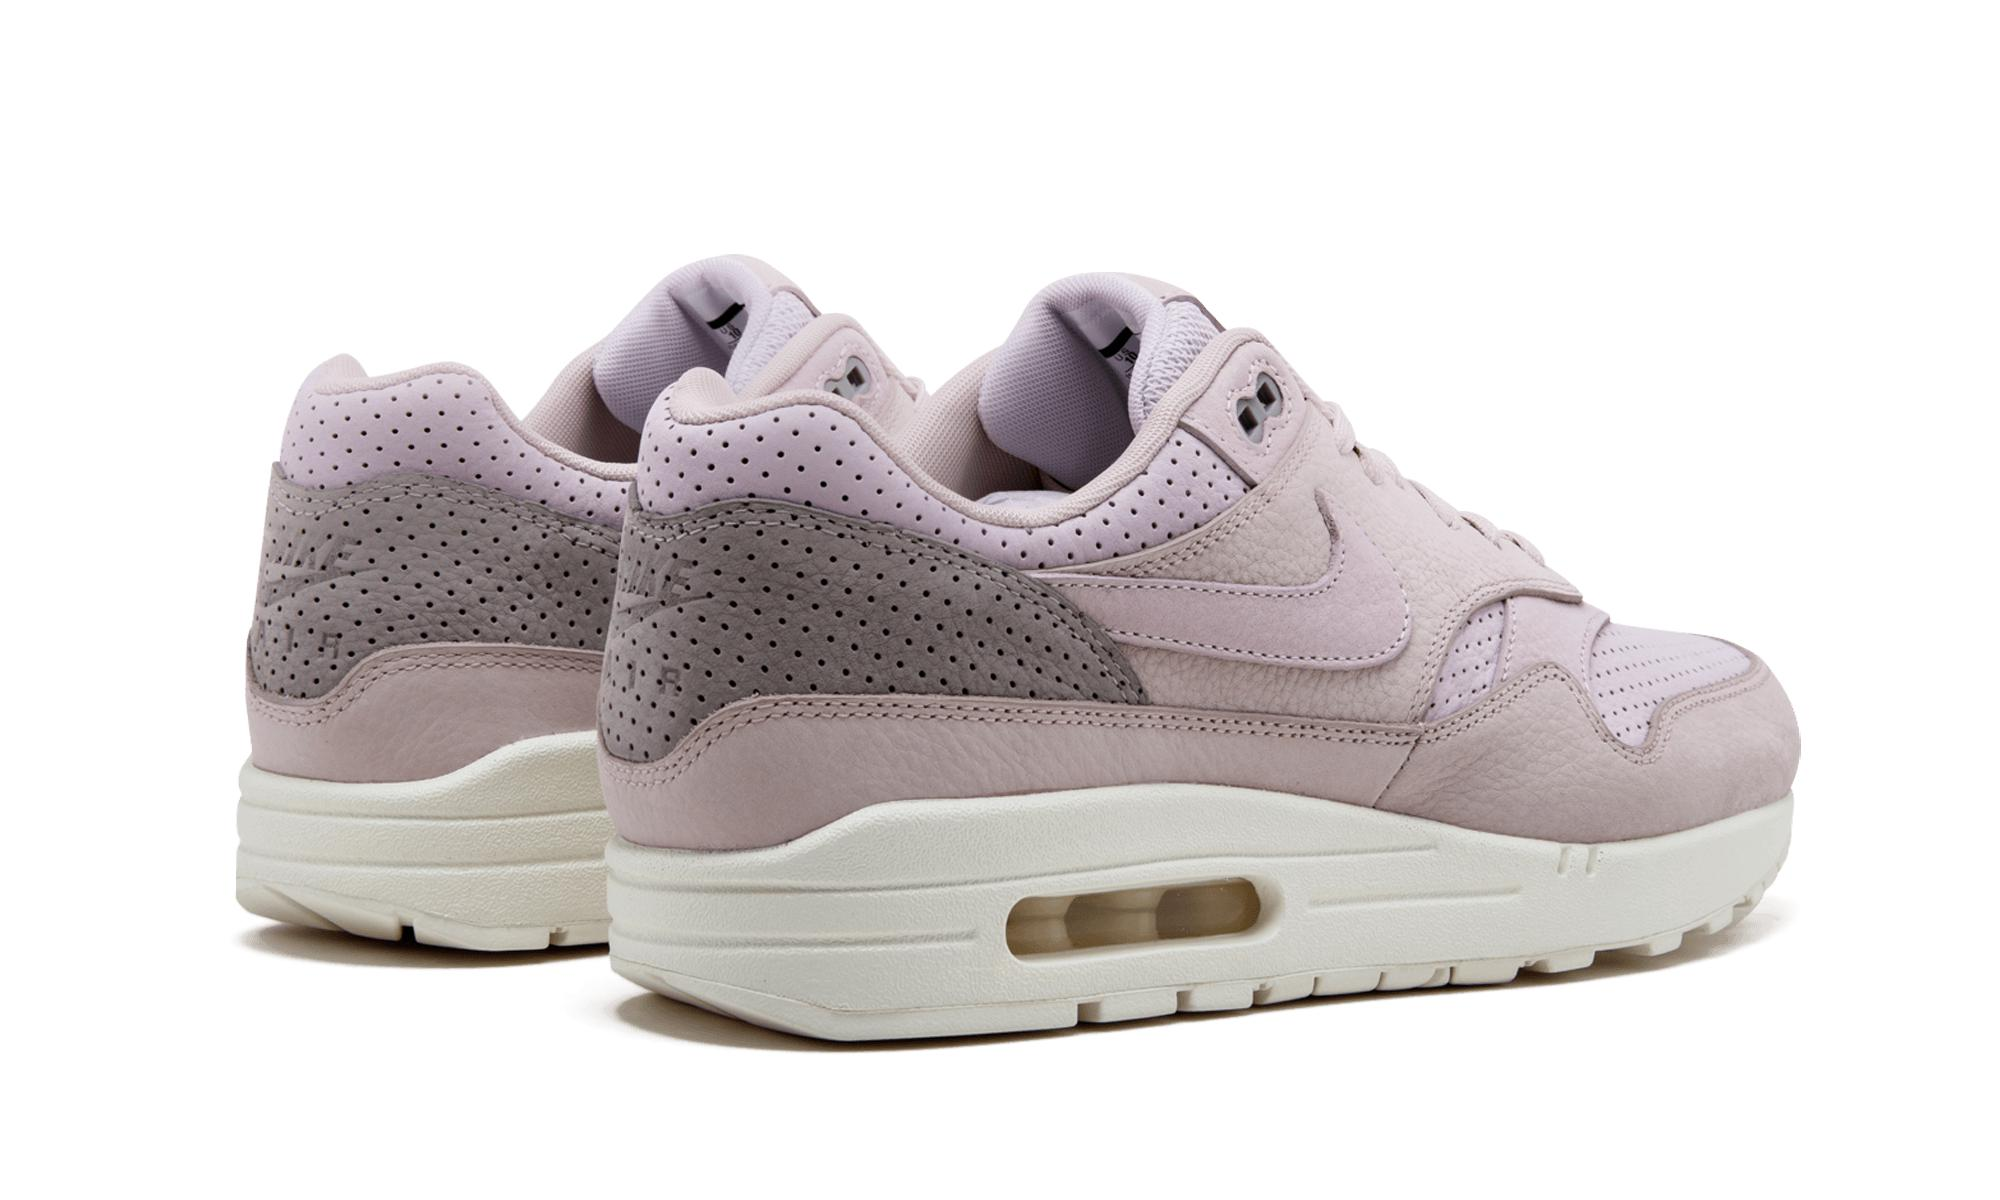 91a784d1789c5 Lyst - Nike Lab Air Max 1 Pinnacle in Pink for Men